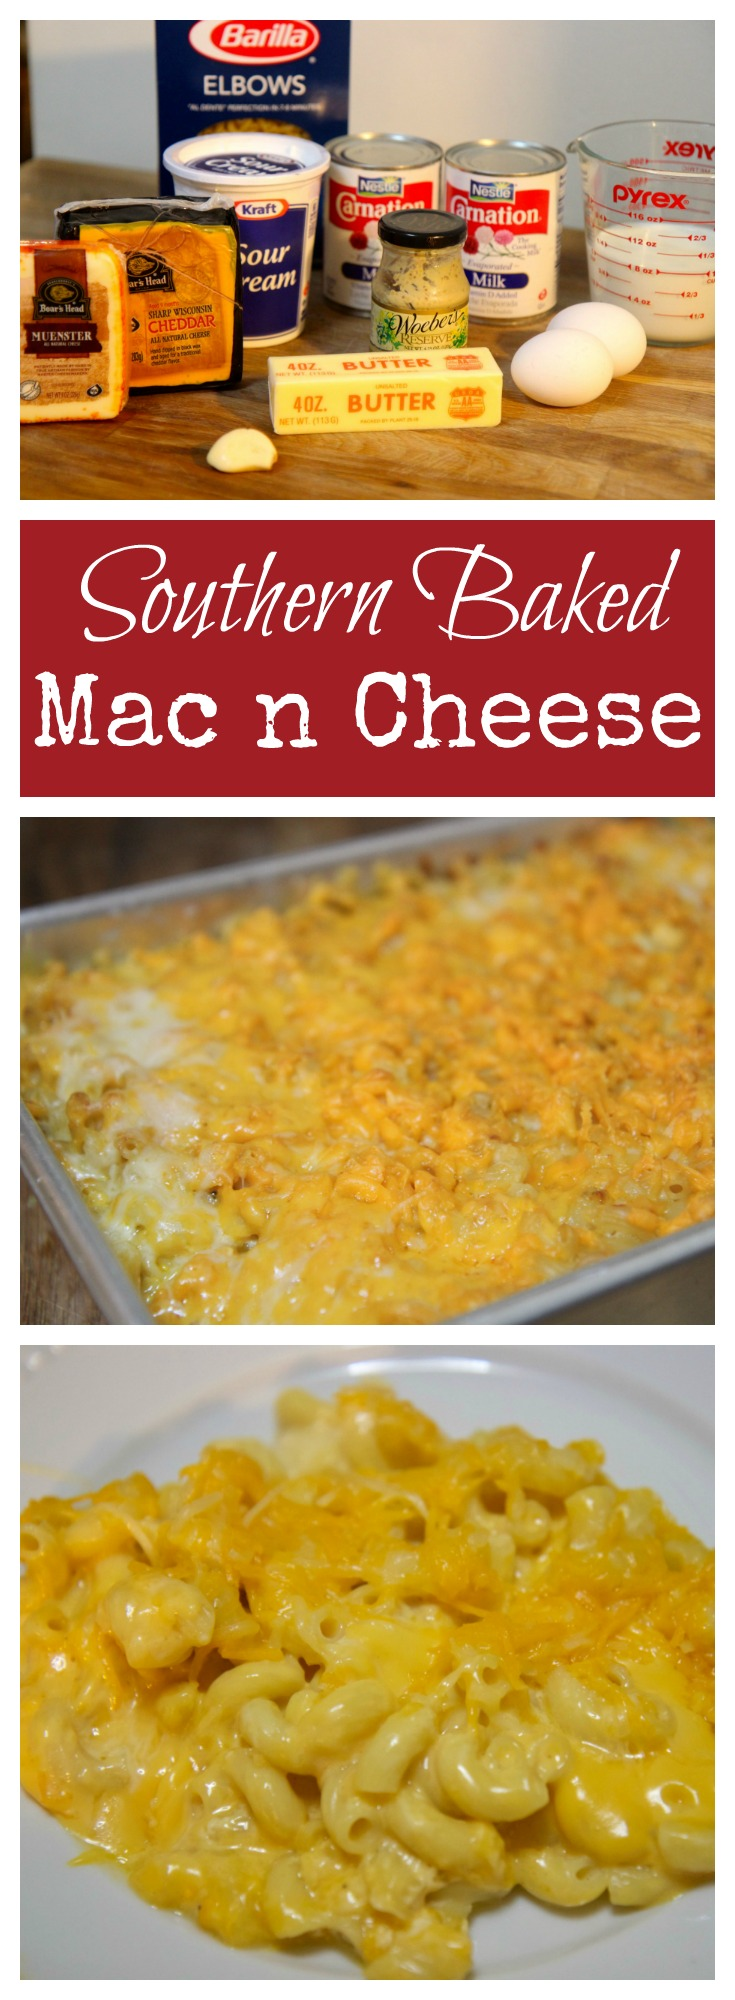 Try this Southern Baked Mac & cheese recipe from Cookedbyjulie.com